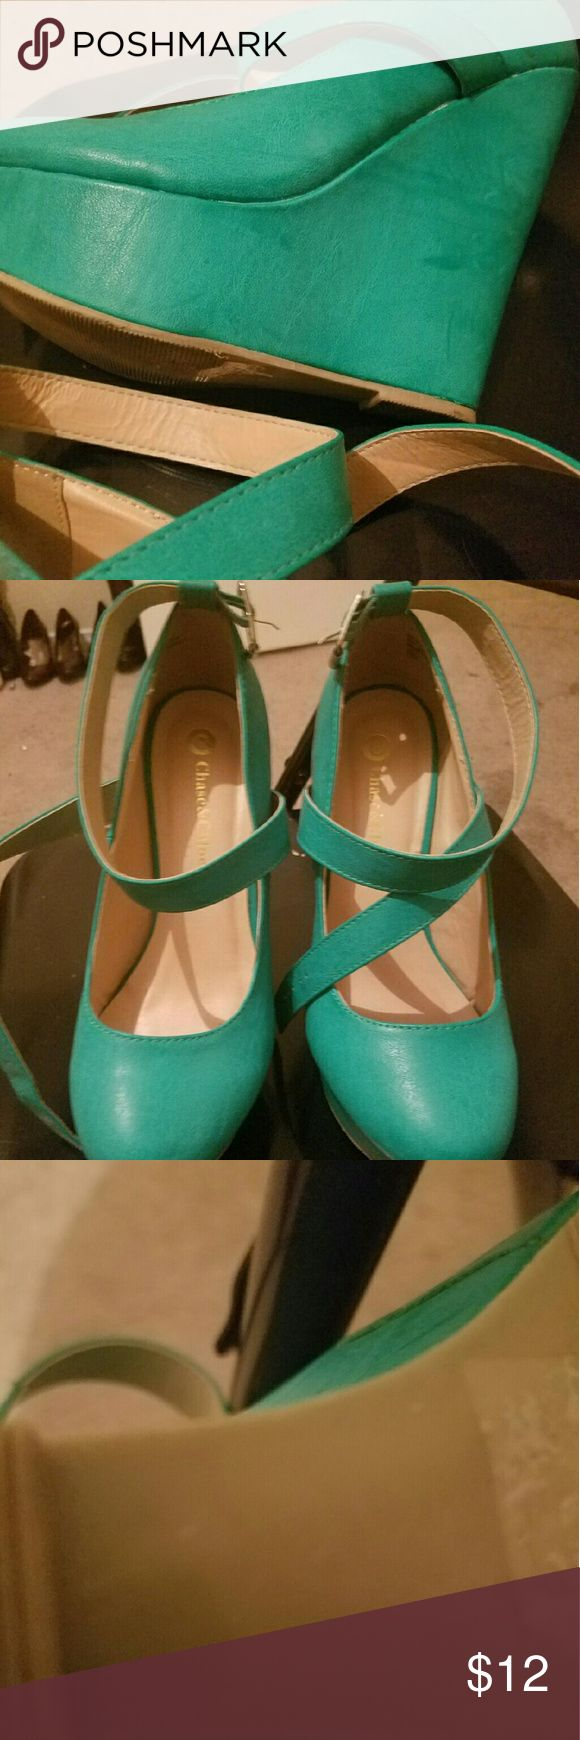 Sea Green strappy wedges Very cute sea green wedge heels size 9 Chase and Chloe Shoes Wedges